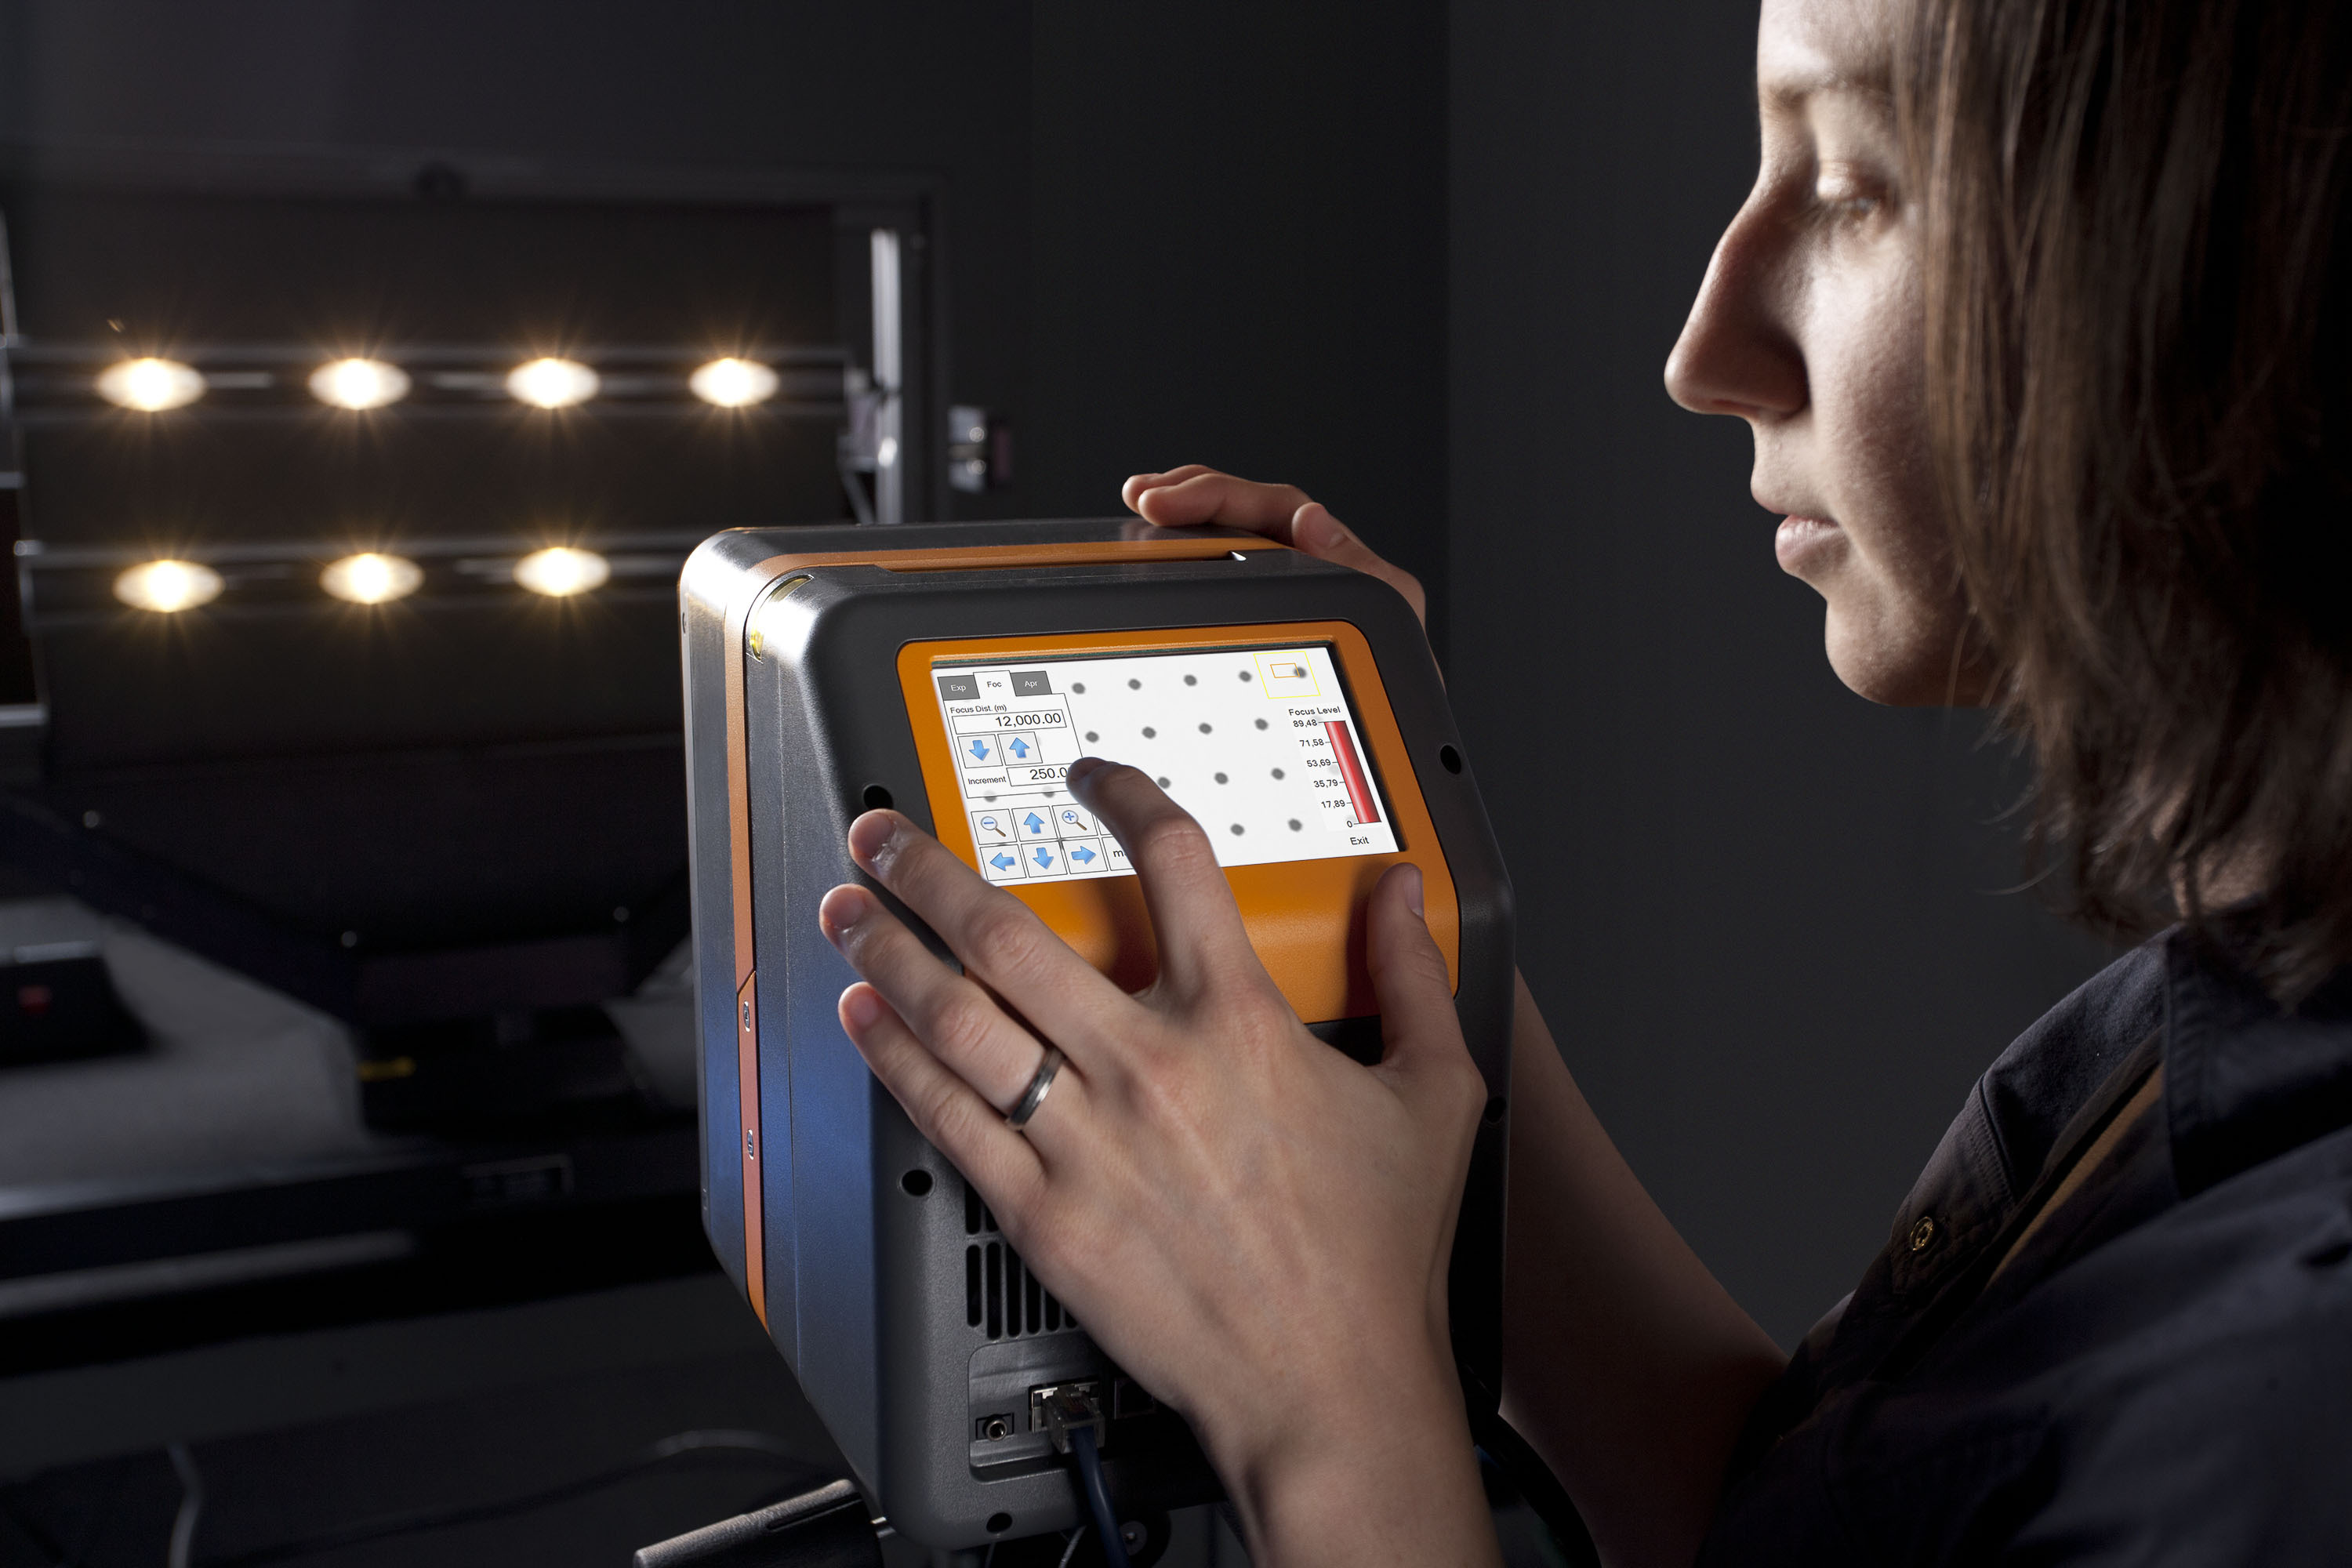 Radiant Zemax to Showcase Integrated Measurement and Modeling Solutions for Lighting Manufacturers at Light + Building 2014 (Photo: Business Wire)